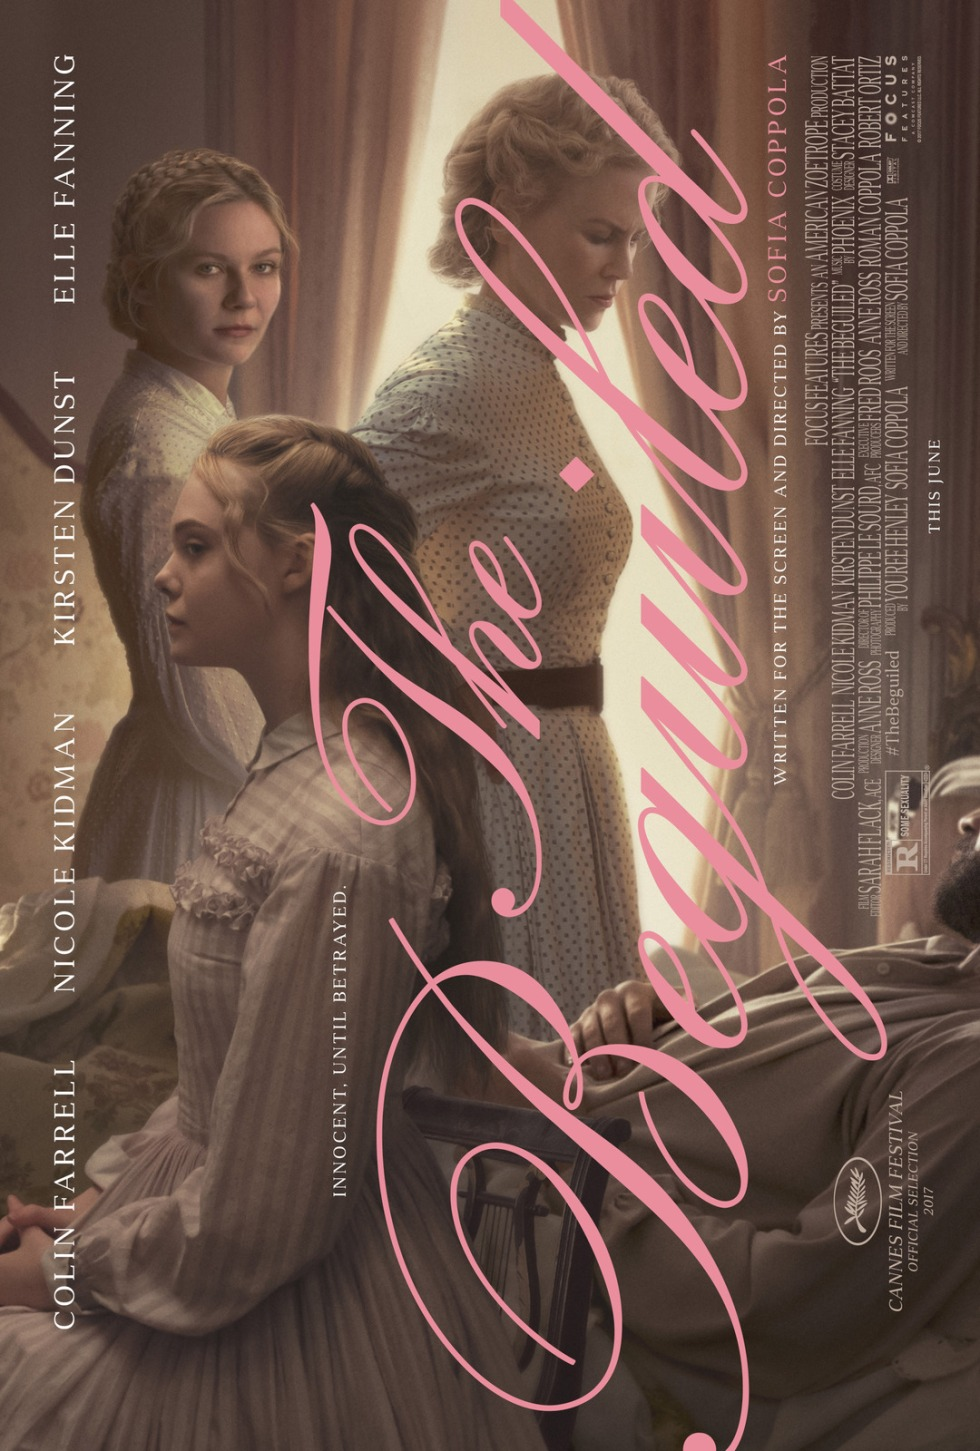 The Beguiled Poster.jpg